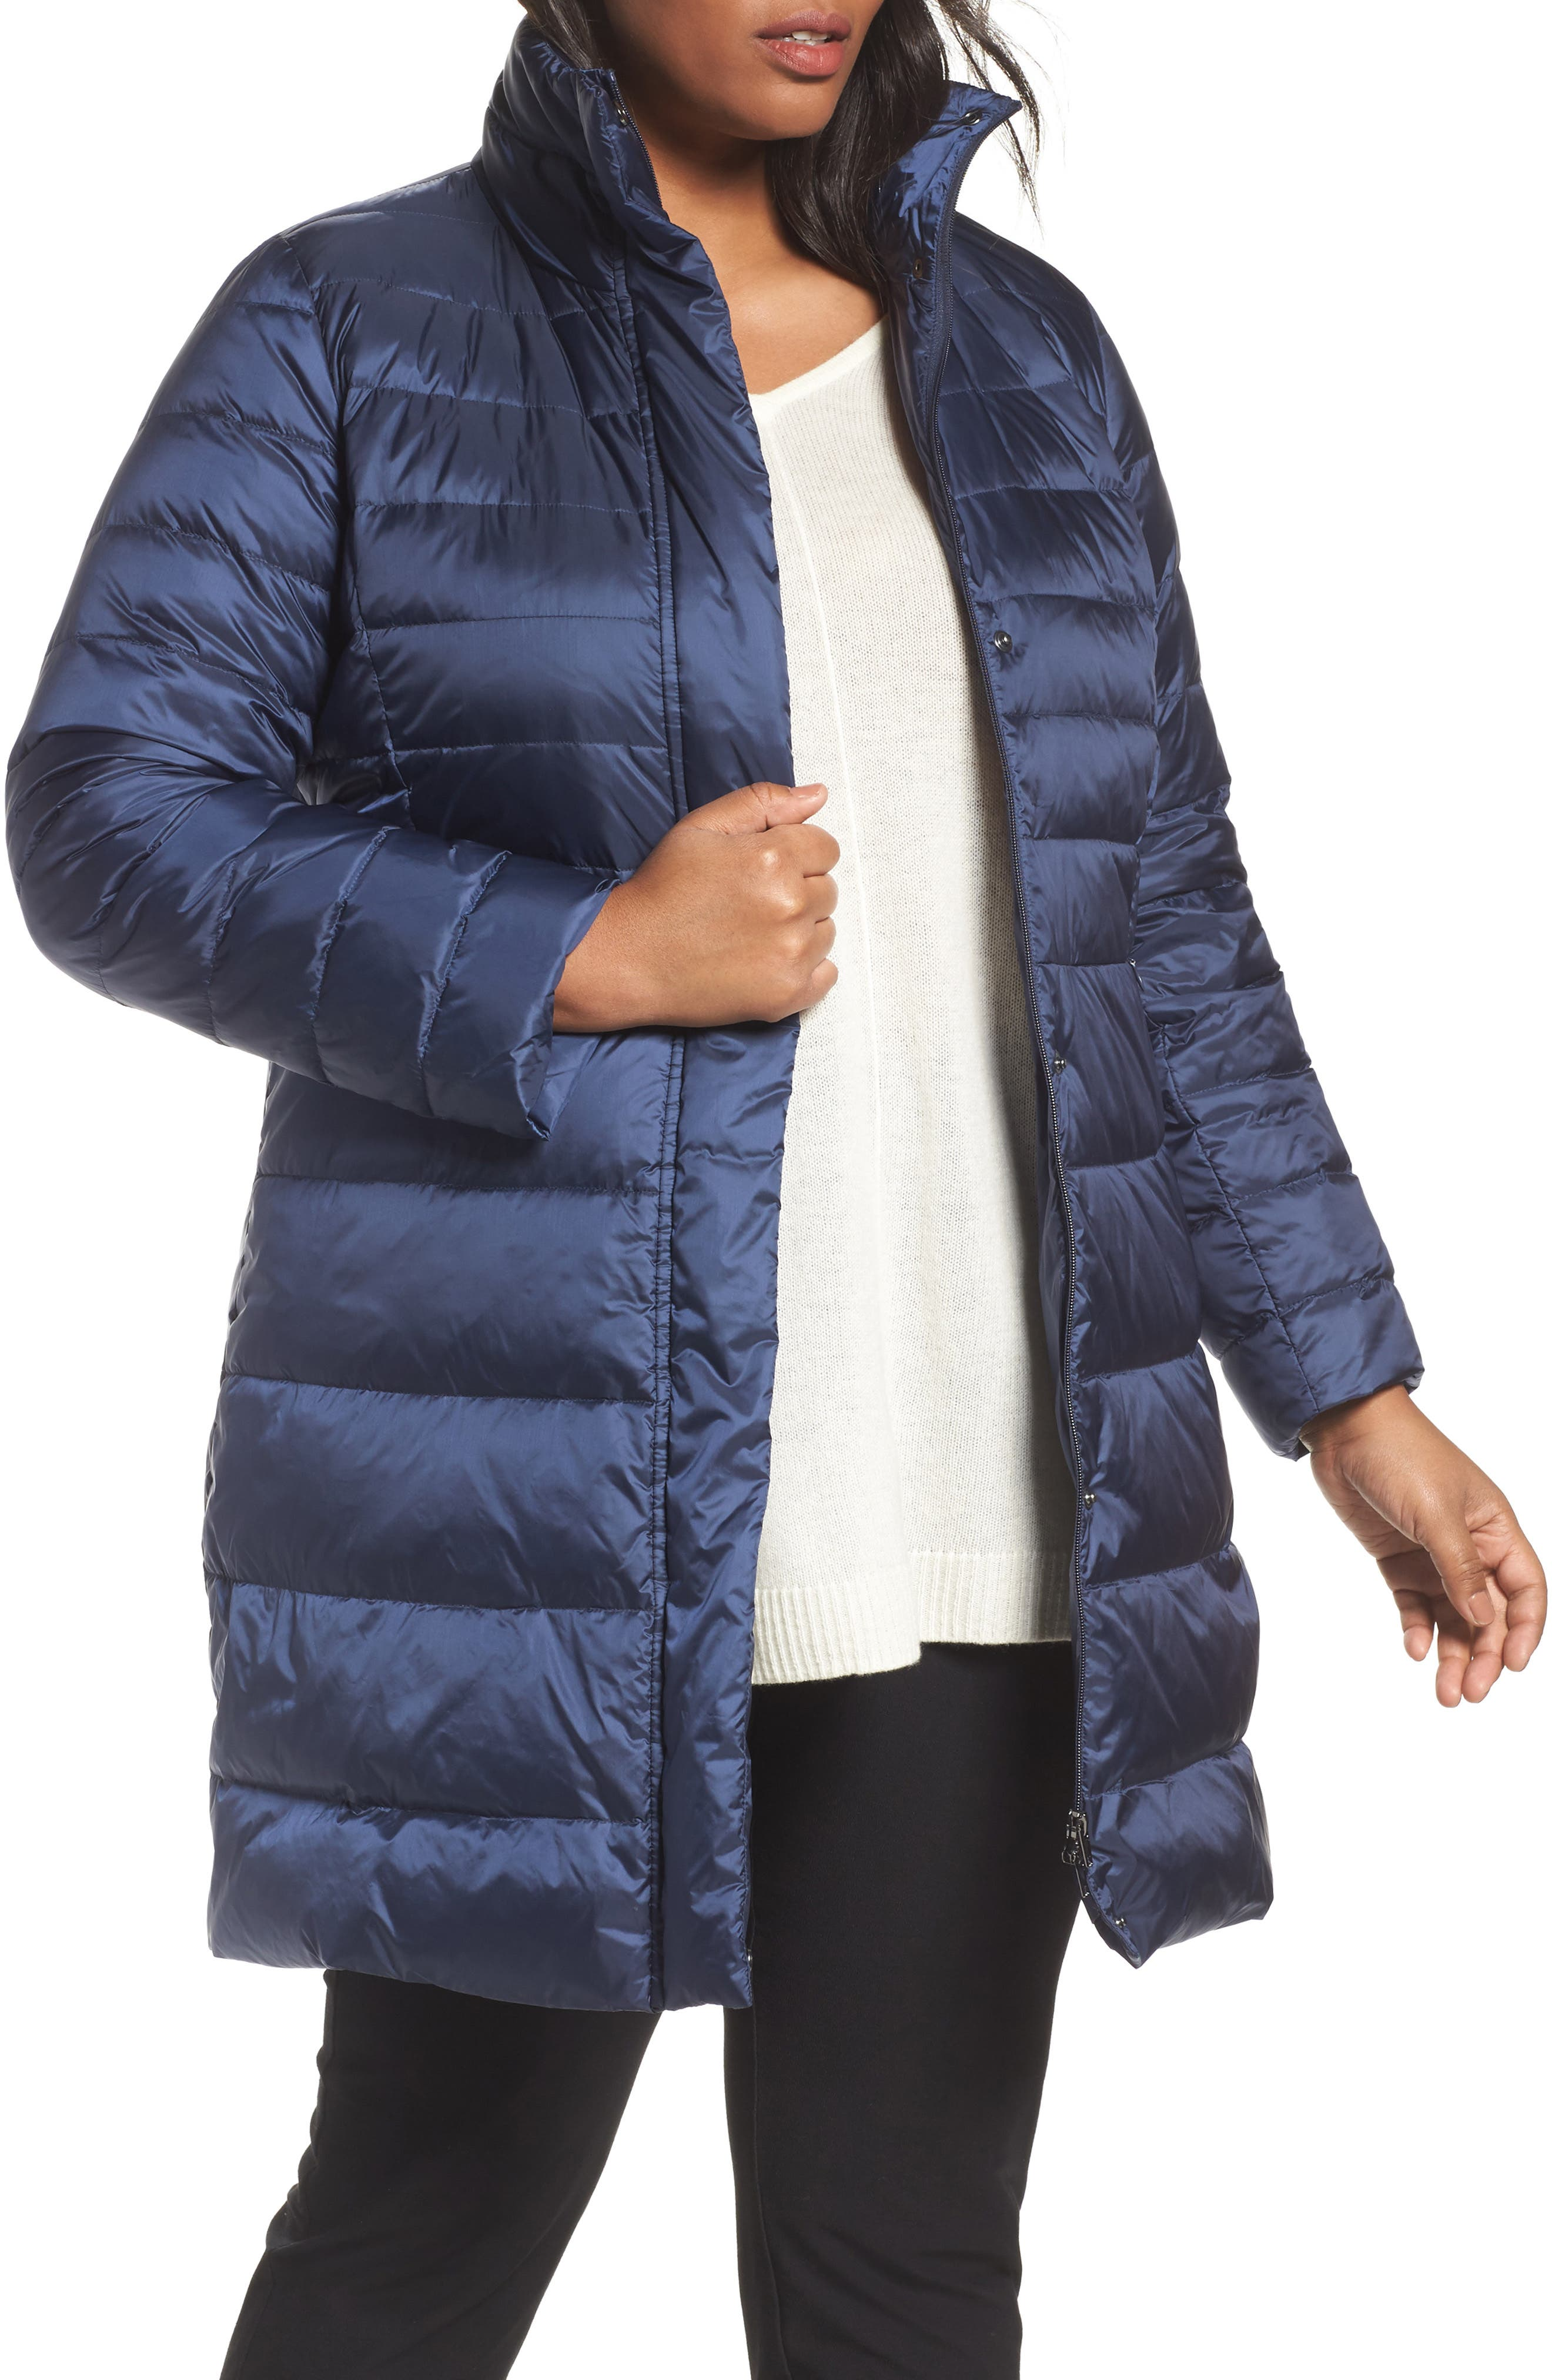 v persona by marina rinaldi panda quilted puffer jacket. Black Bedroom Furniture Sets. Home Design Ideas